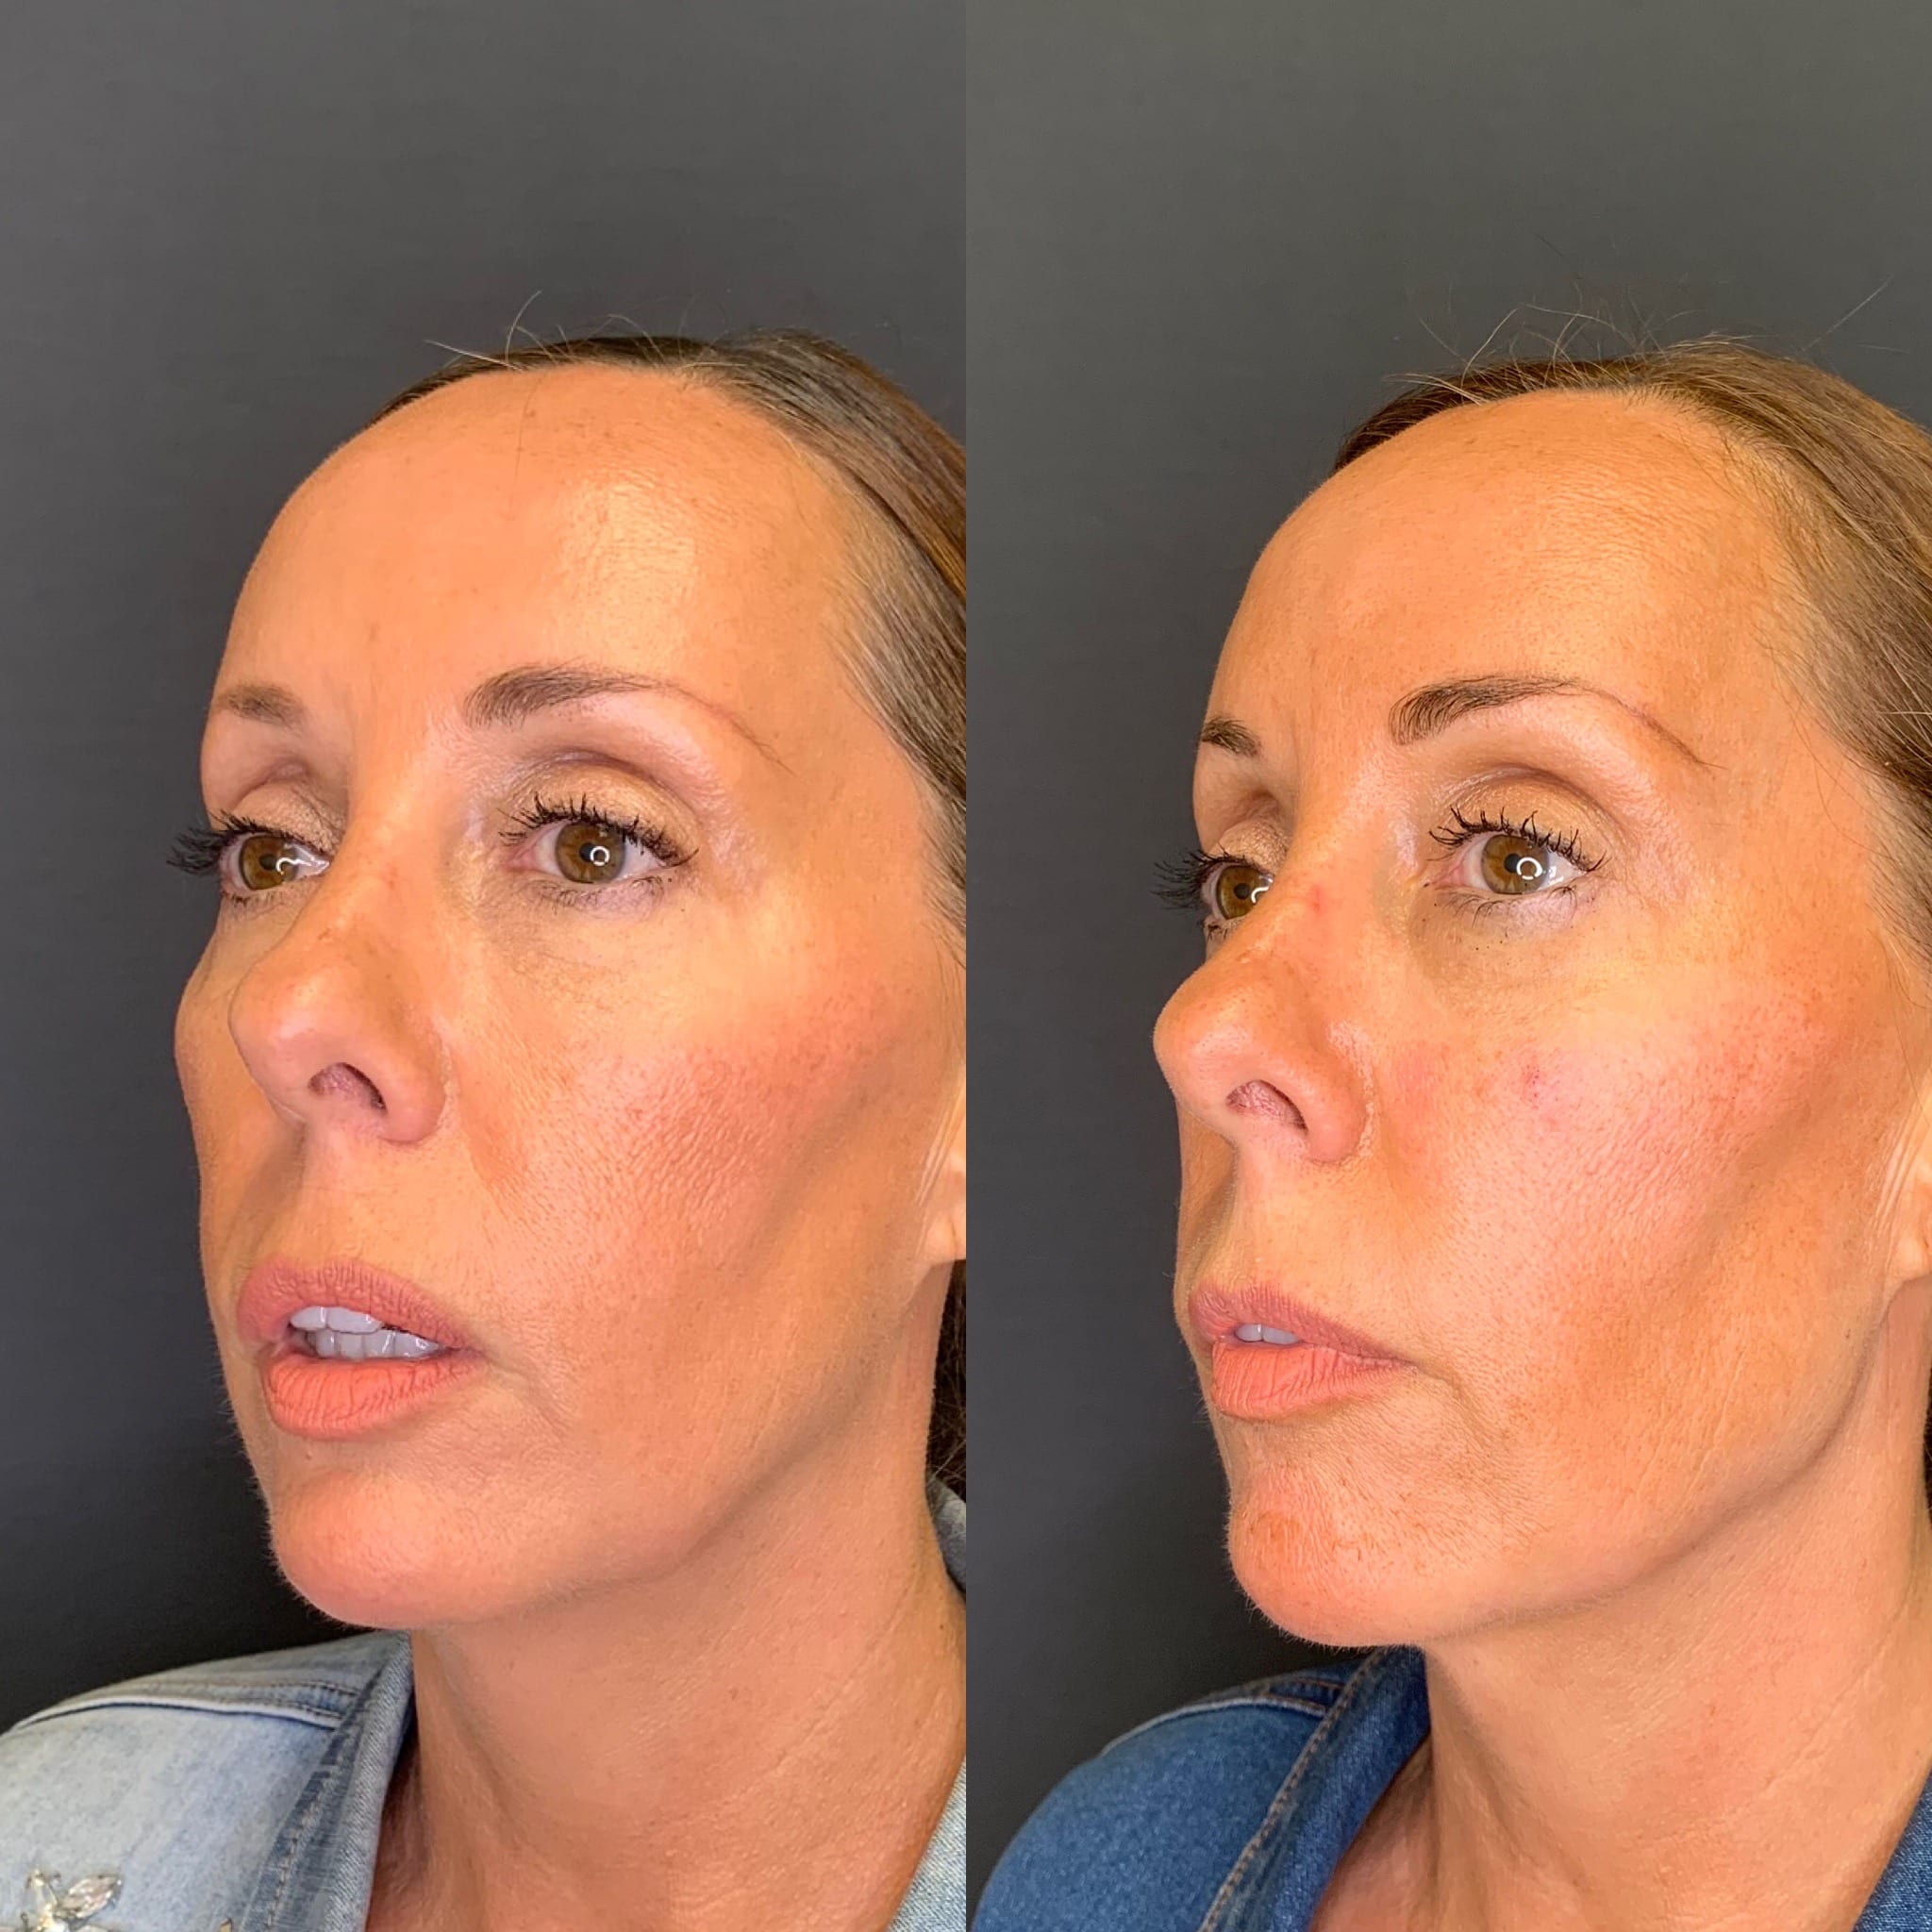 55 y/o Caucasian F 2 weeks after injecting 4 syringes of voluma along her jawline for better contour & definition.